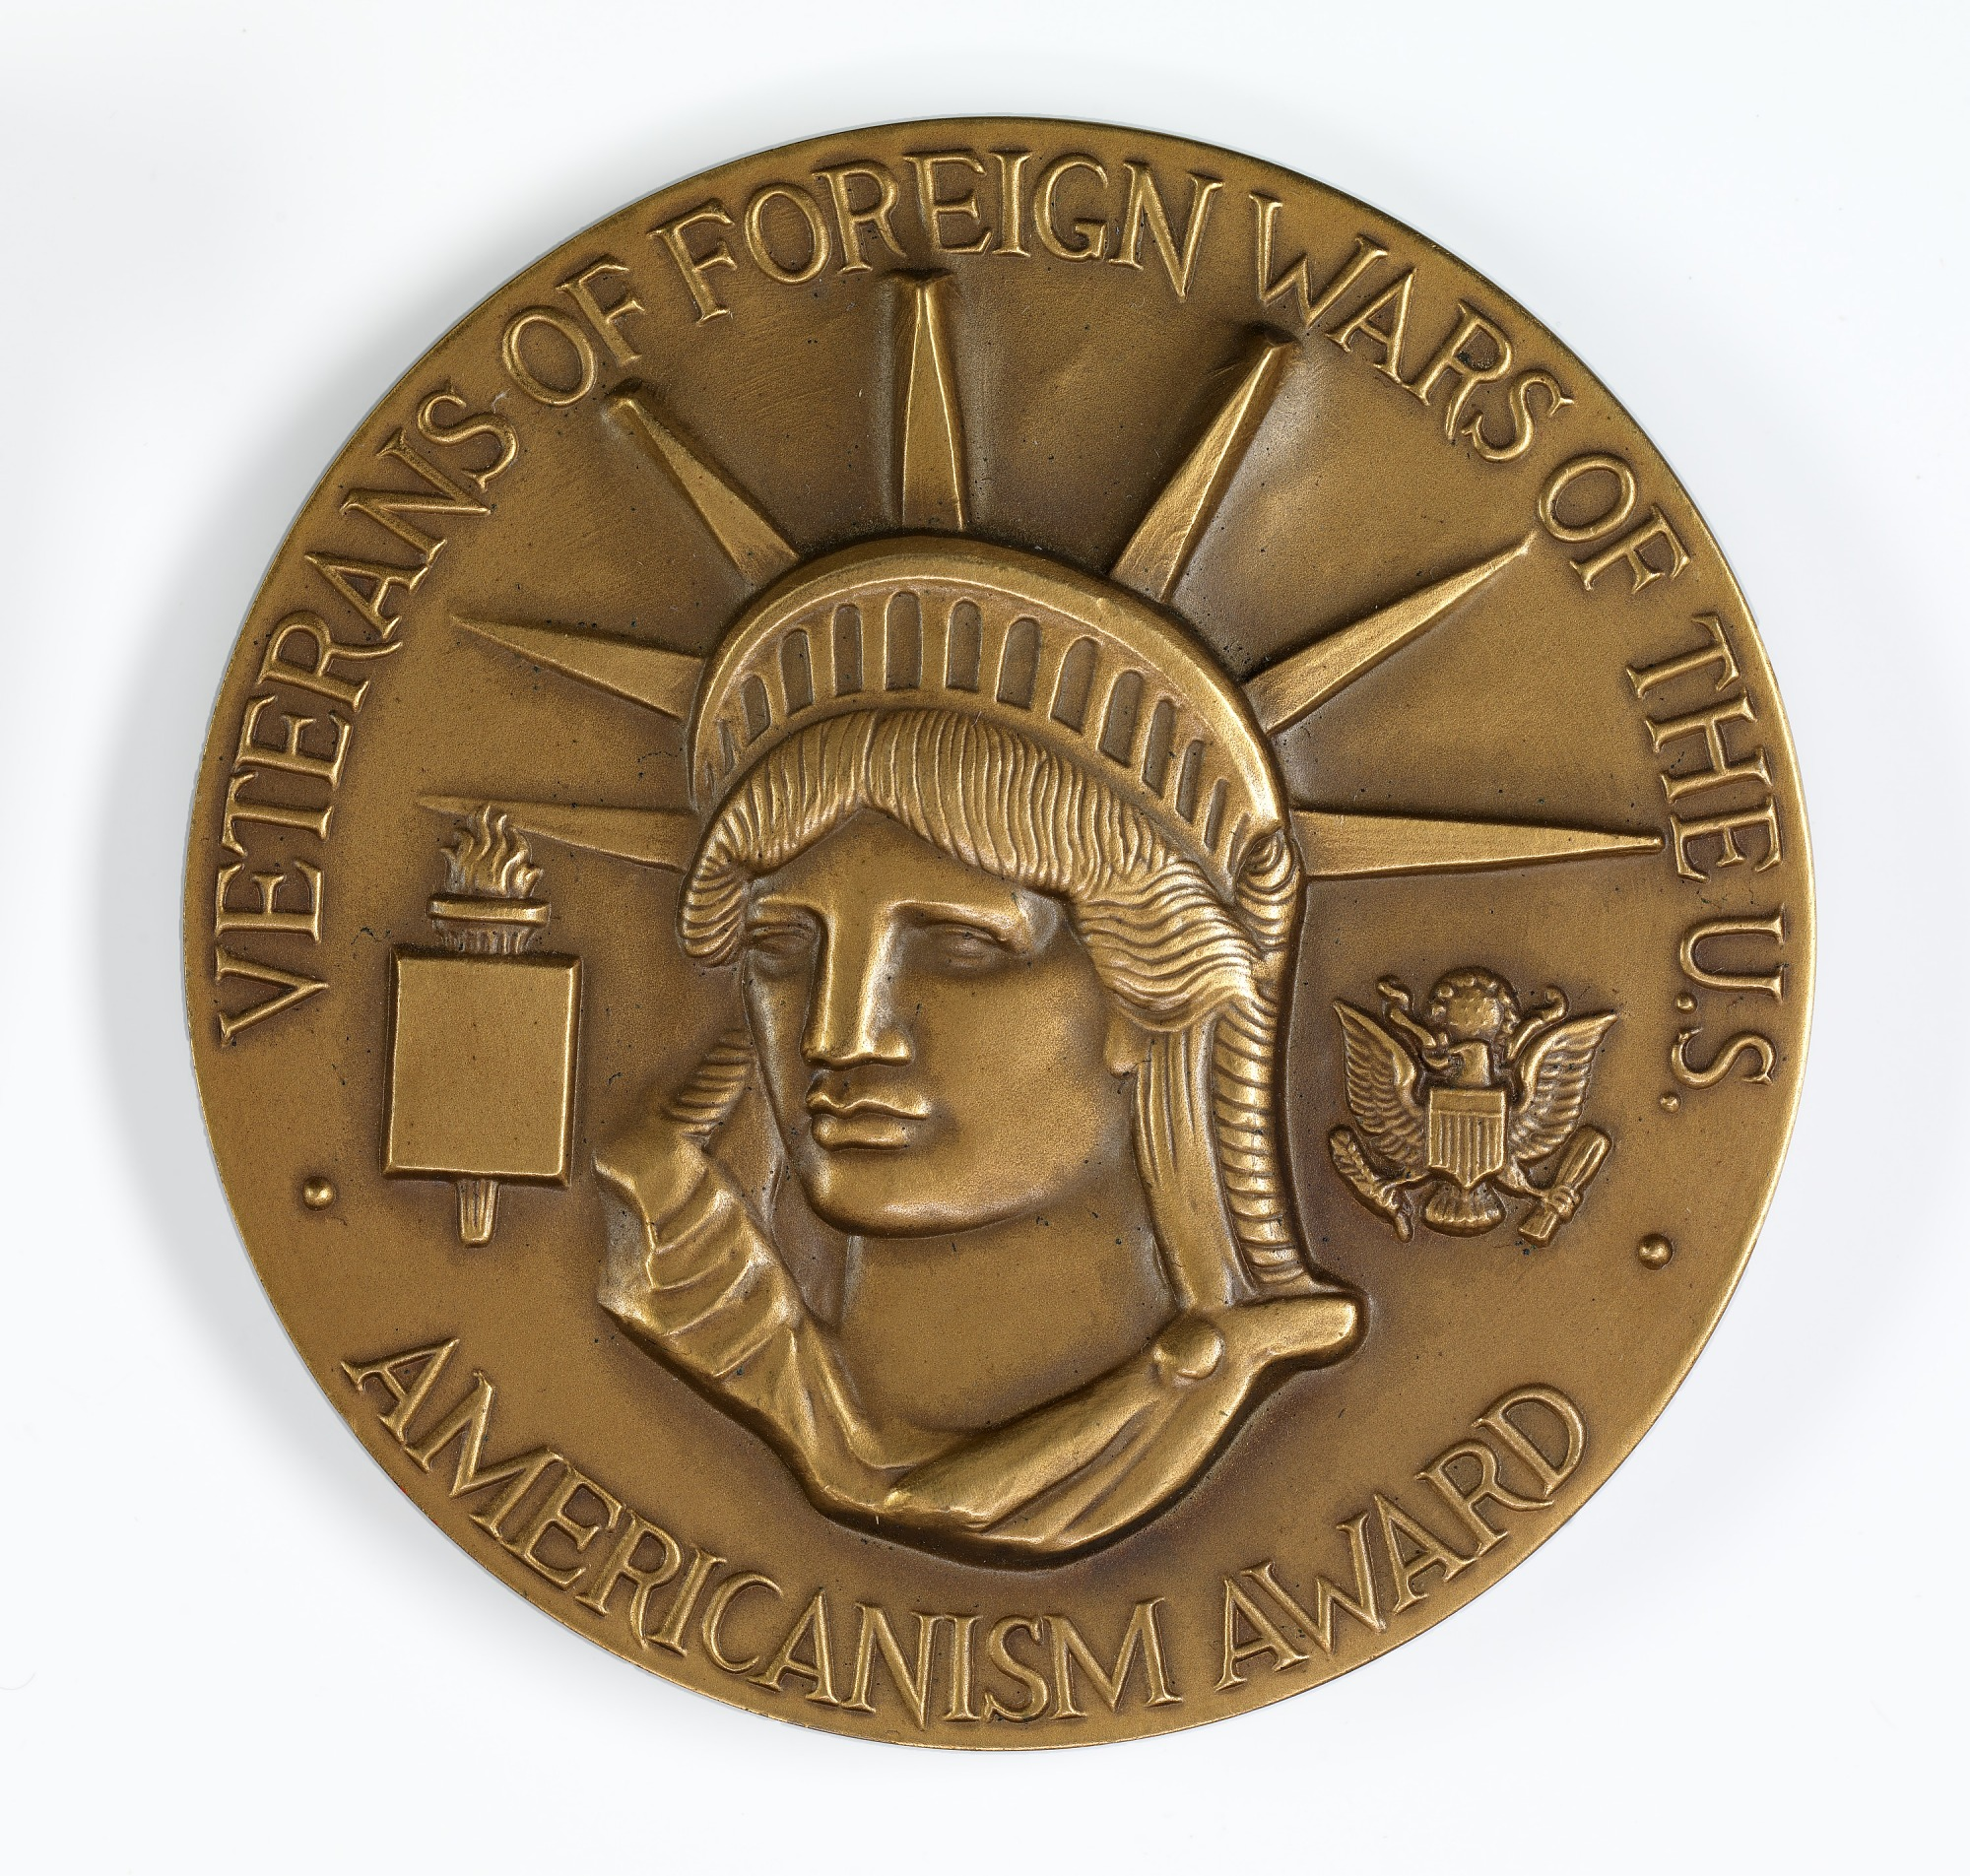 images for Veterans of Foreign Wars of U.S. Americanism Award for Distinguished Patriotic Service